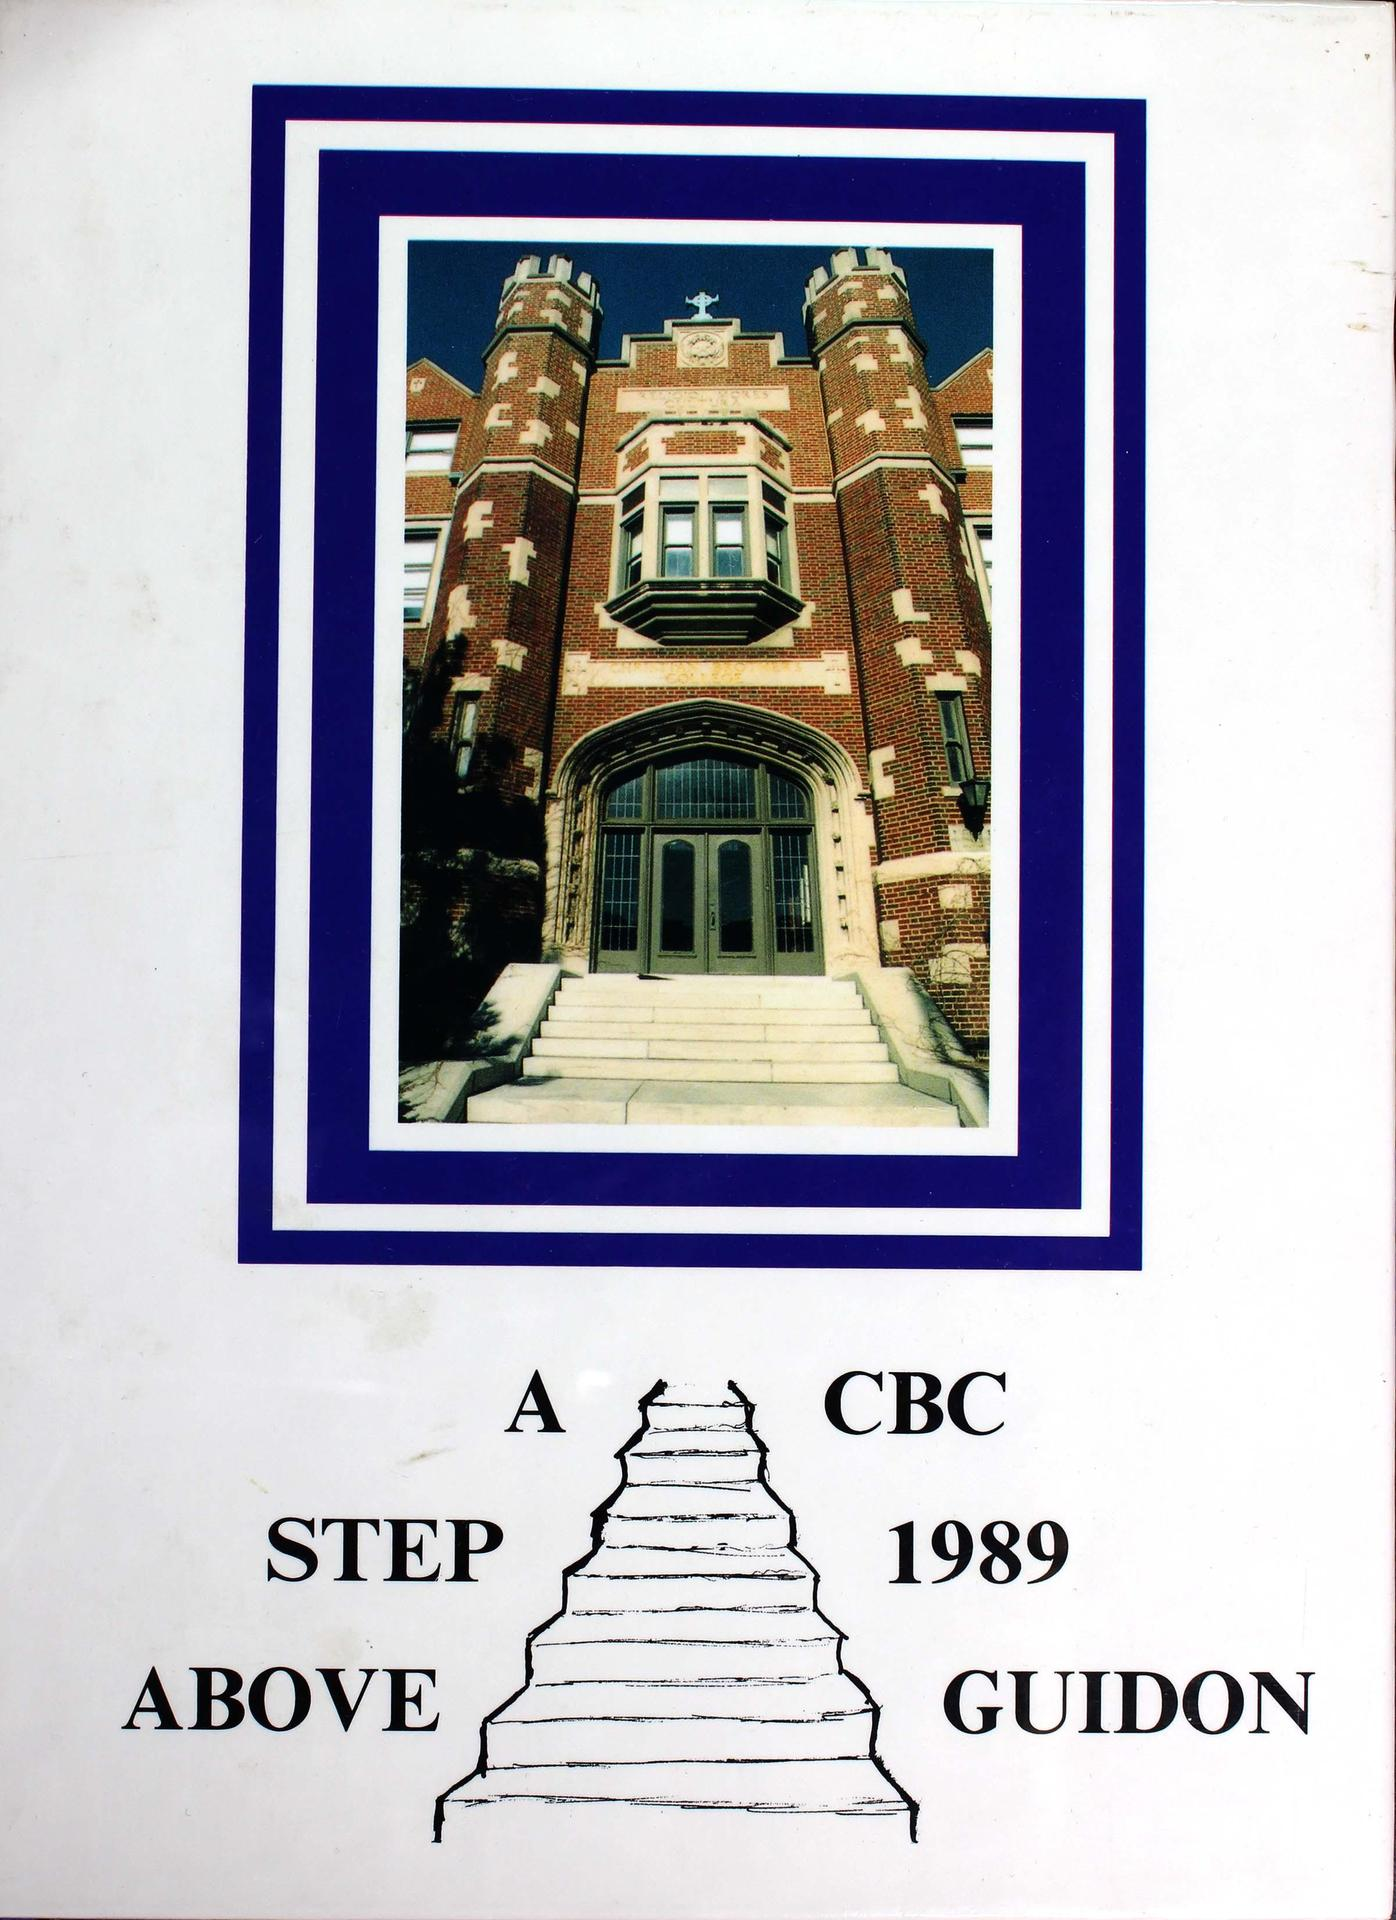 1989 CBC Yearbook